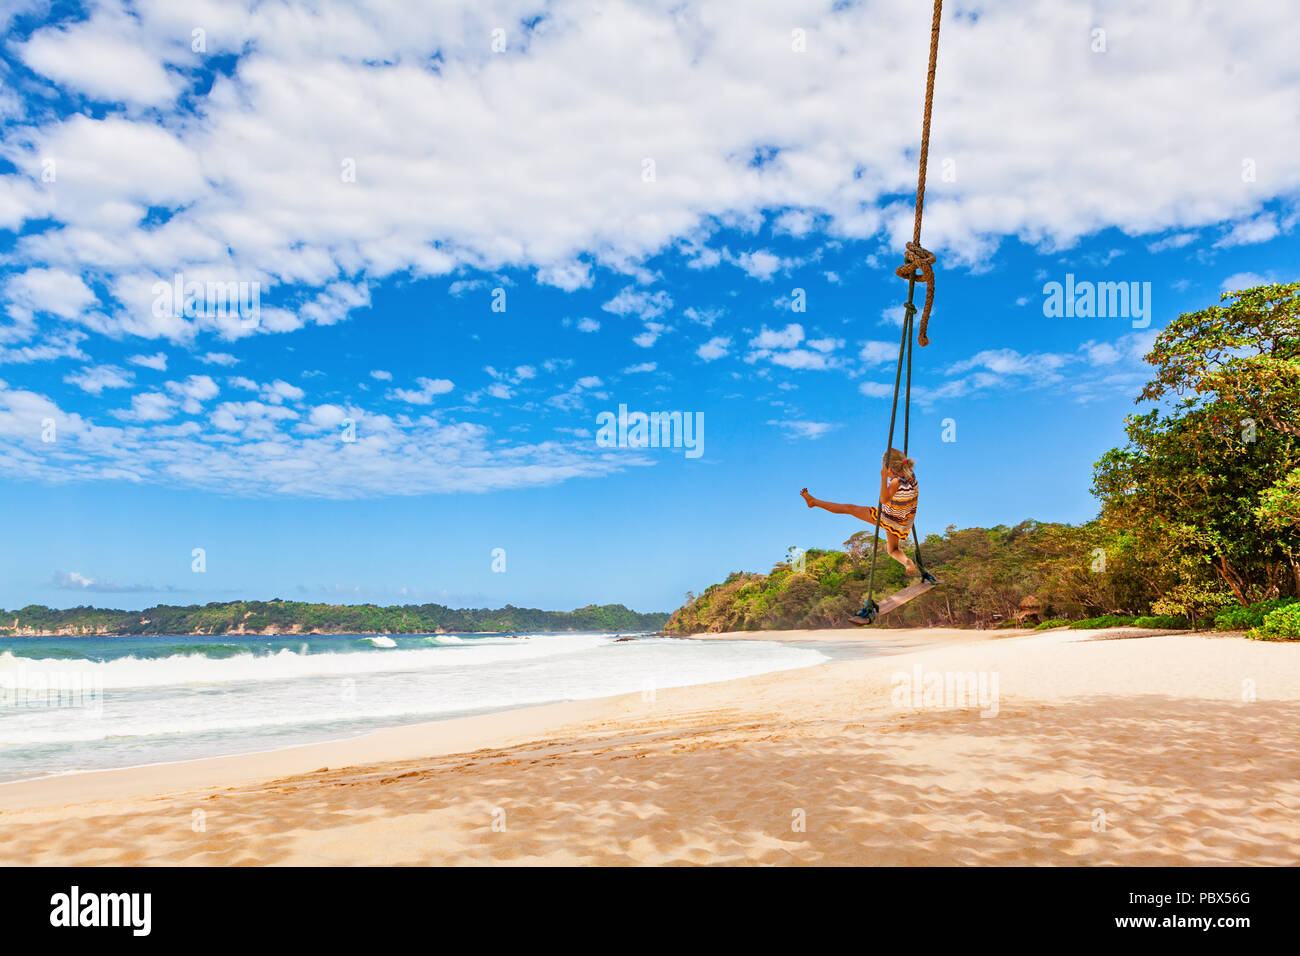 Happy girl have fun swinging high in mid air. Flying up on rope swing on sea beach. Travel adventure on paradise tropical island. Family holidays - Stock Image